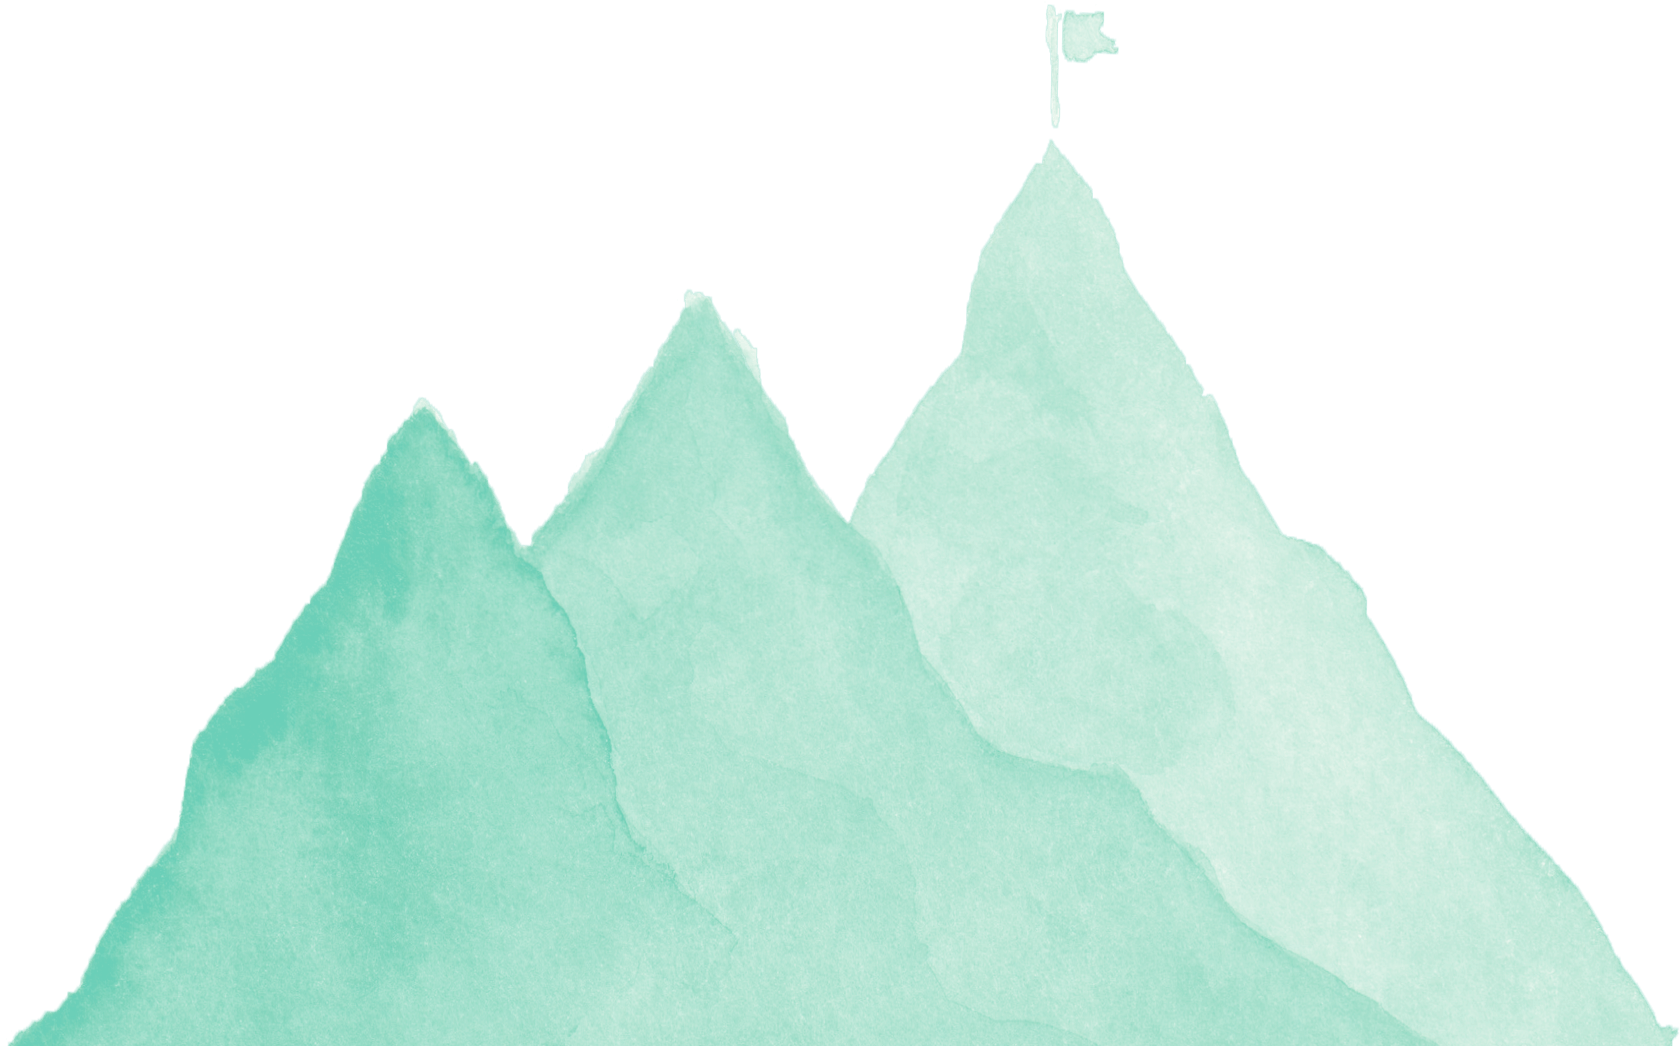 mountain graphic